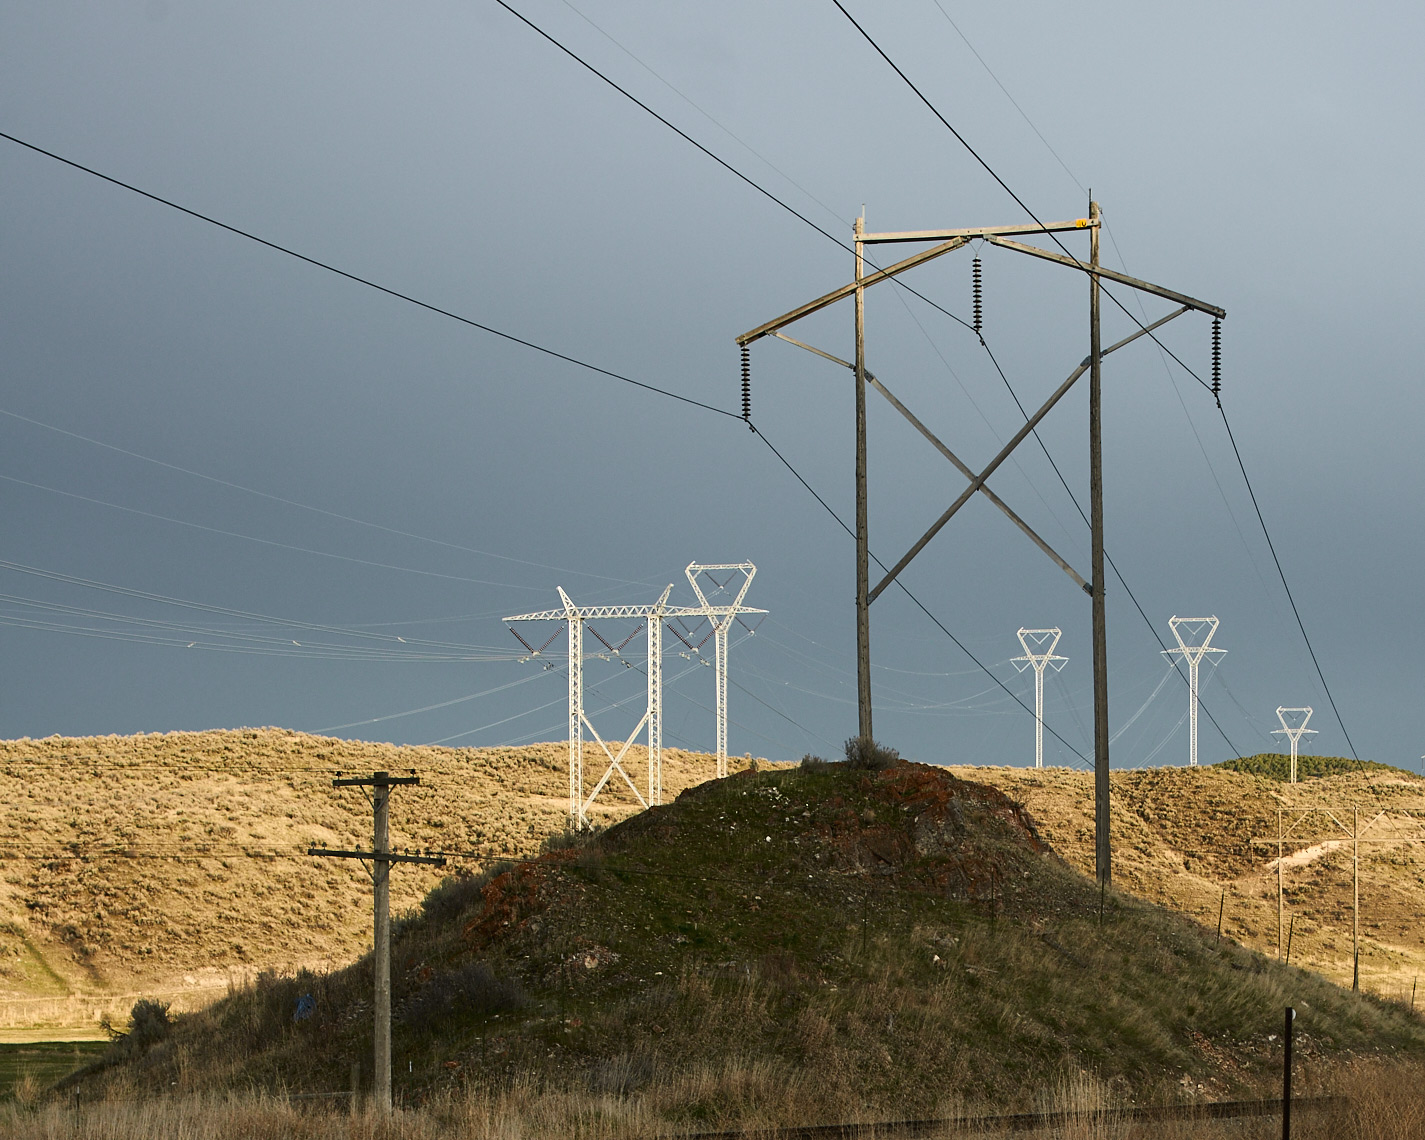 20120405_Powerlines_Idaho_017